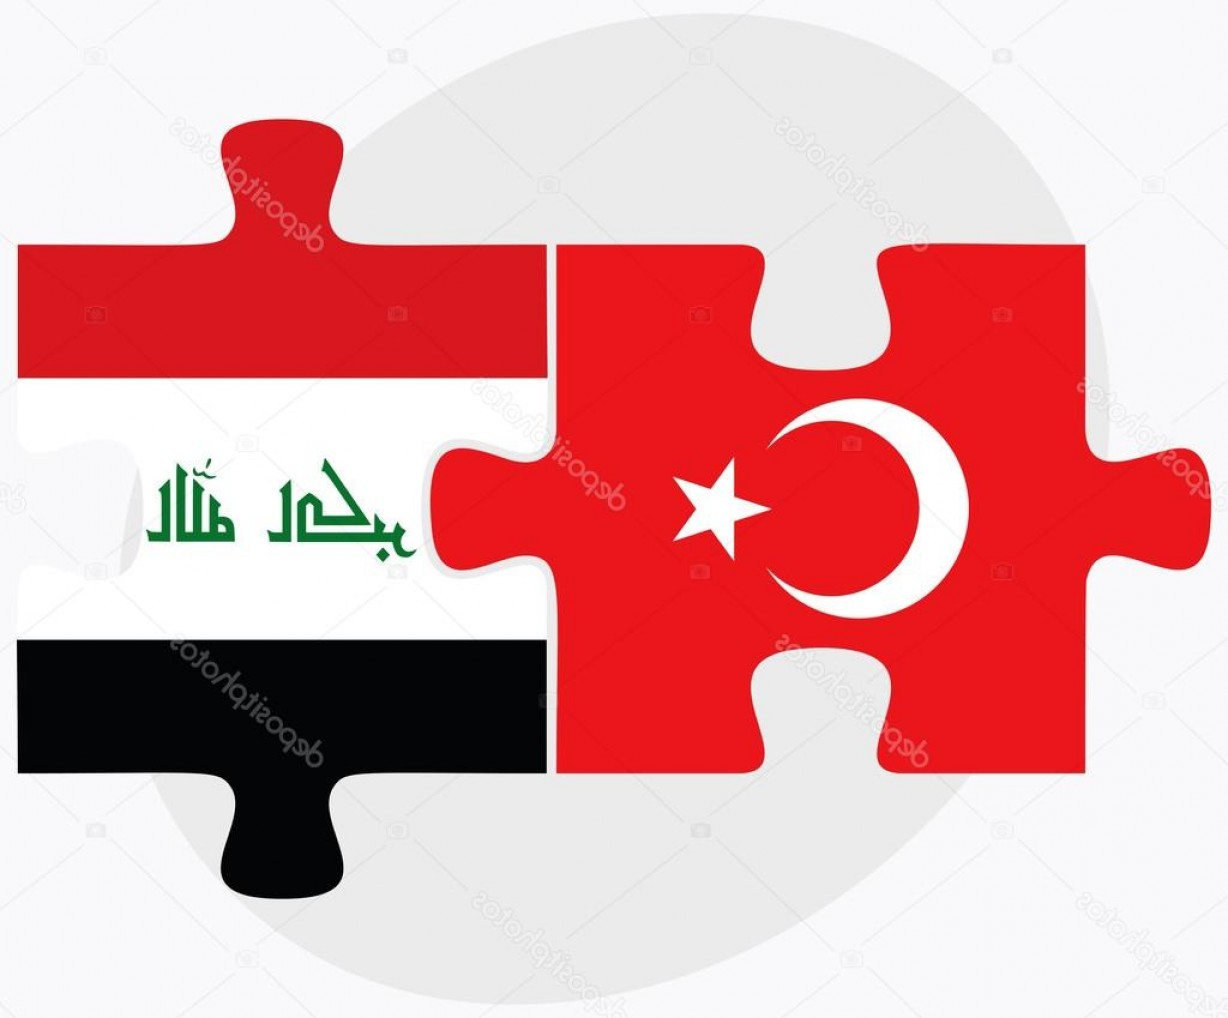 Turkey Logo Vector Art: Stock Illustration Turkey And Iraq Flags